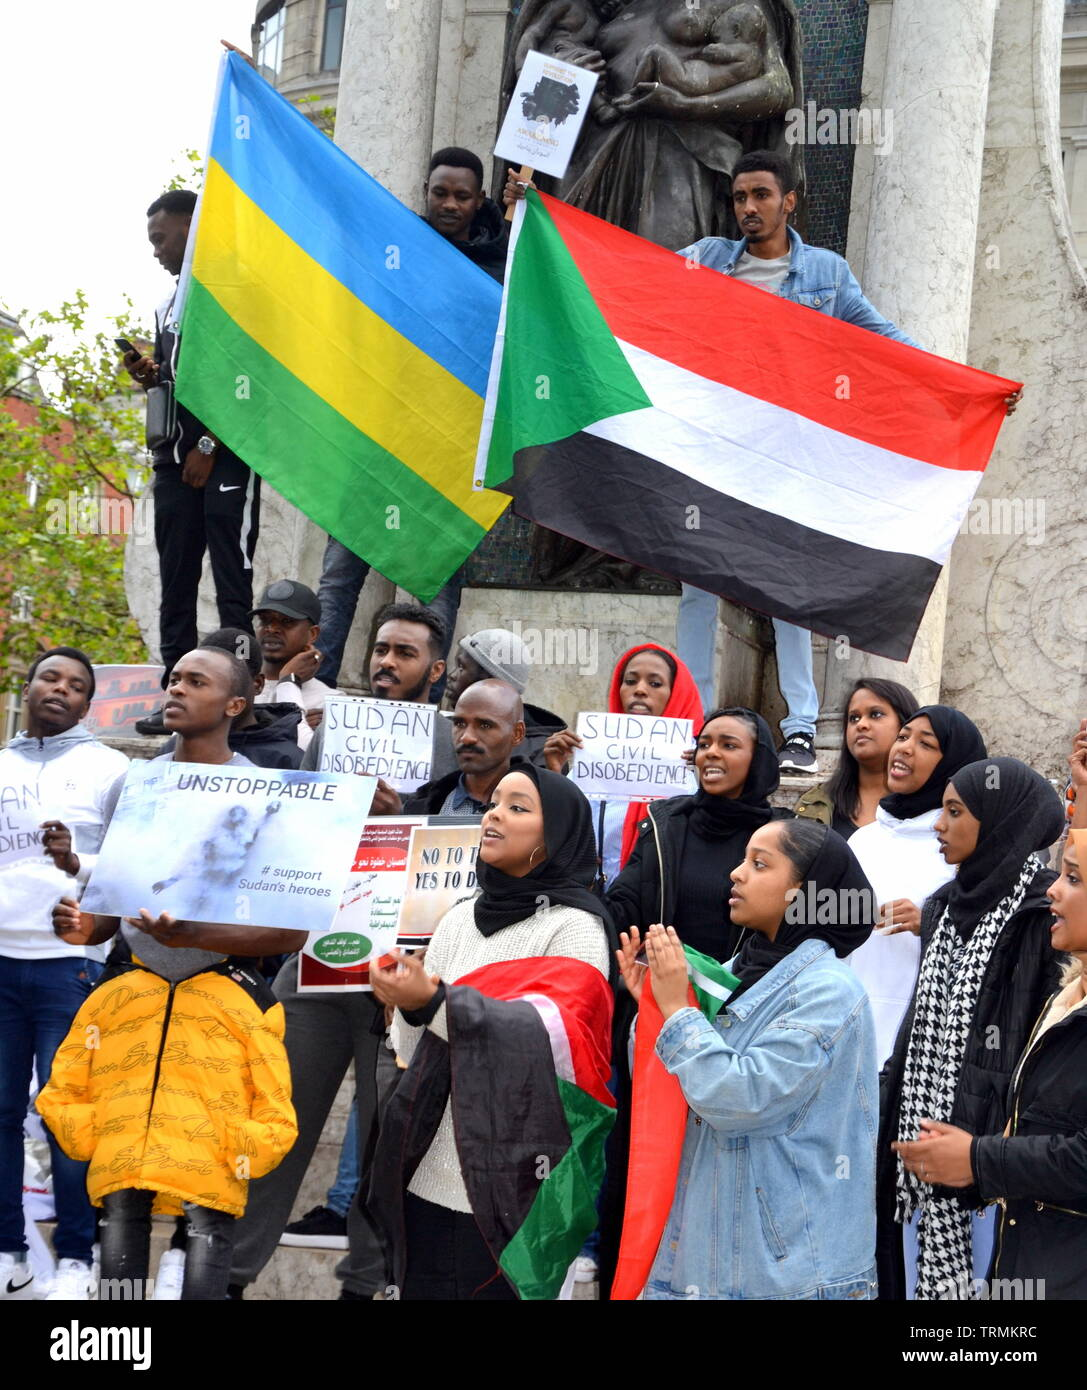 June 9, 2019. Supporters of the Sudanese Uprising campaign for the second day running in Piccadilly Gardens, city centre Manchester, uk. Since December, 2018, people in Sudan and elsewhere have called for political reform and a civilian led government in Sudan. In April the military removed President Omar al-Bashir from power. - Stock Image